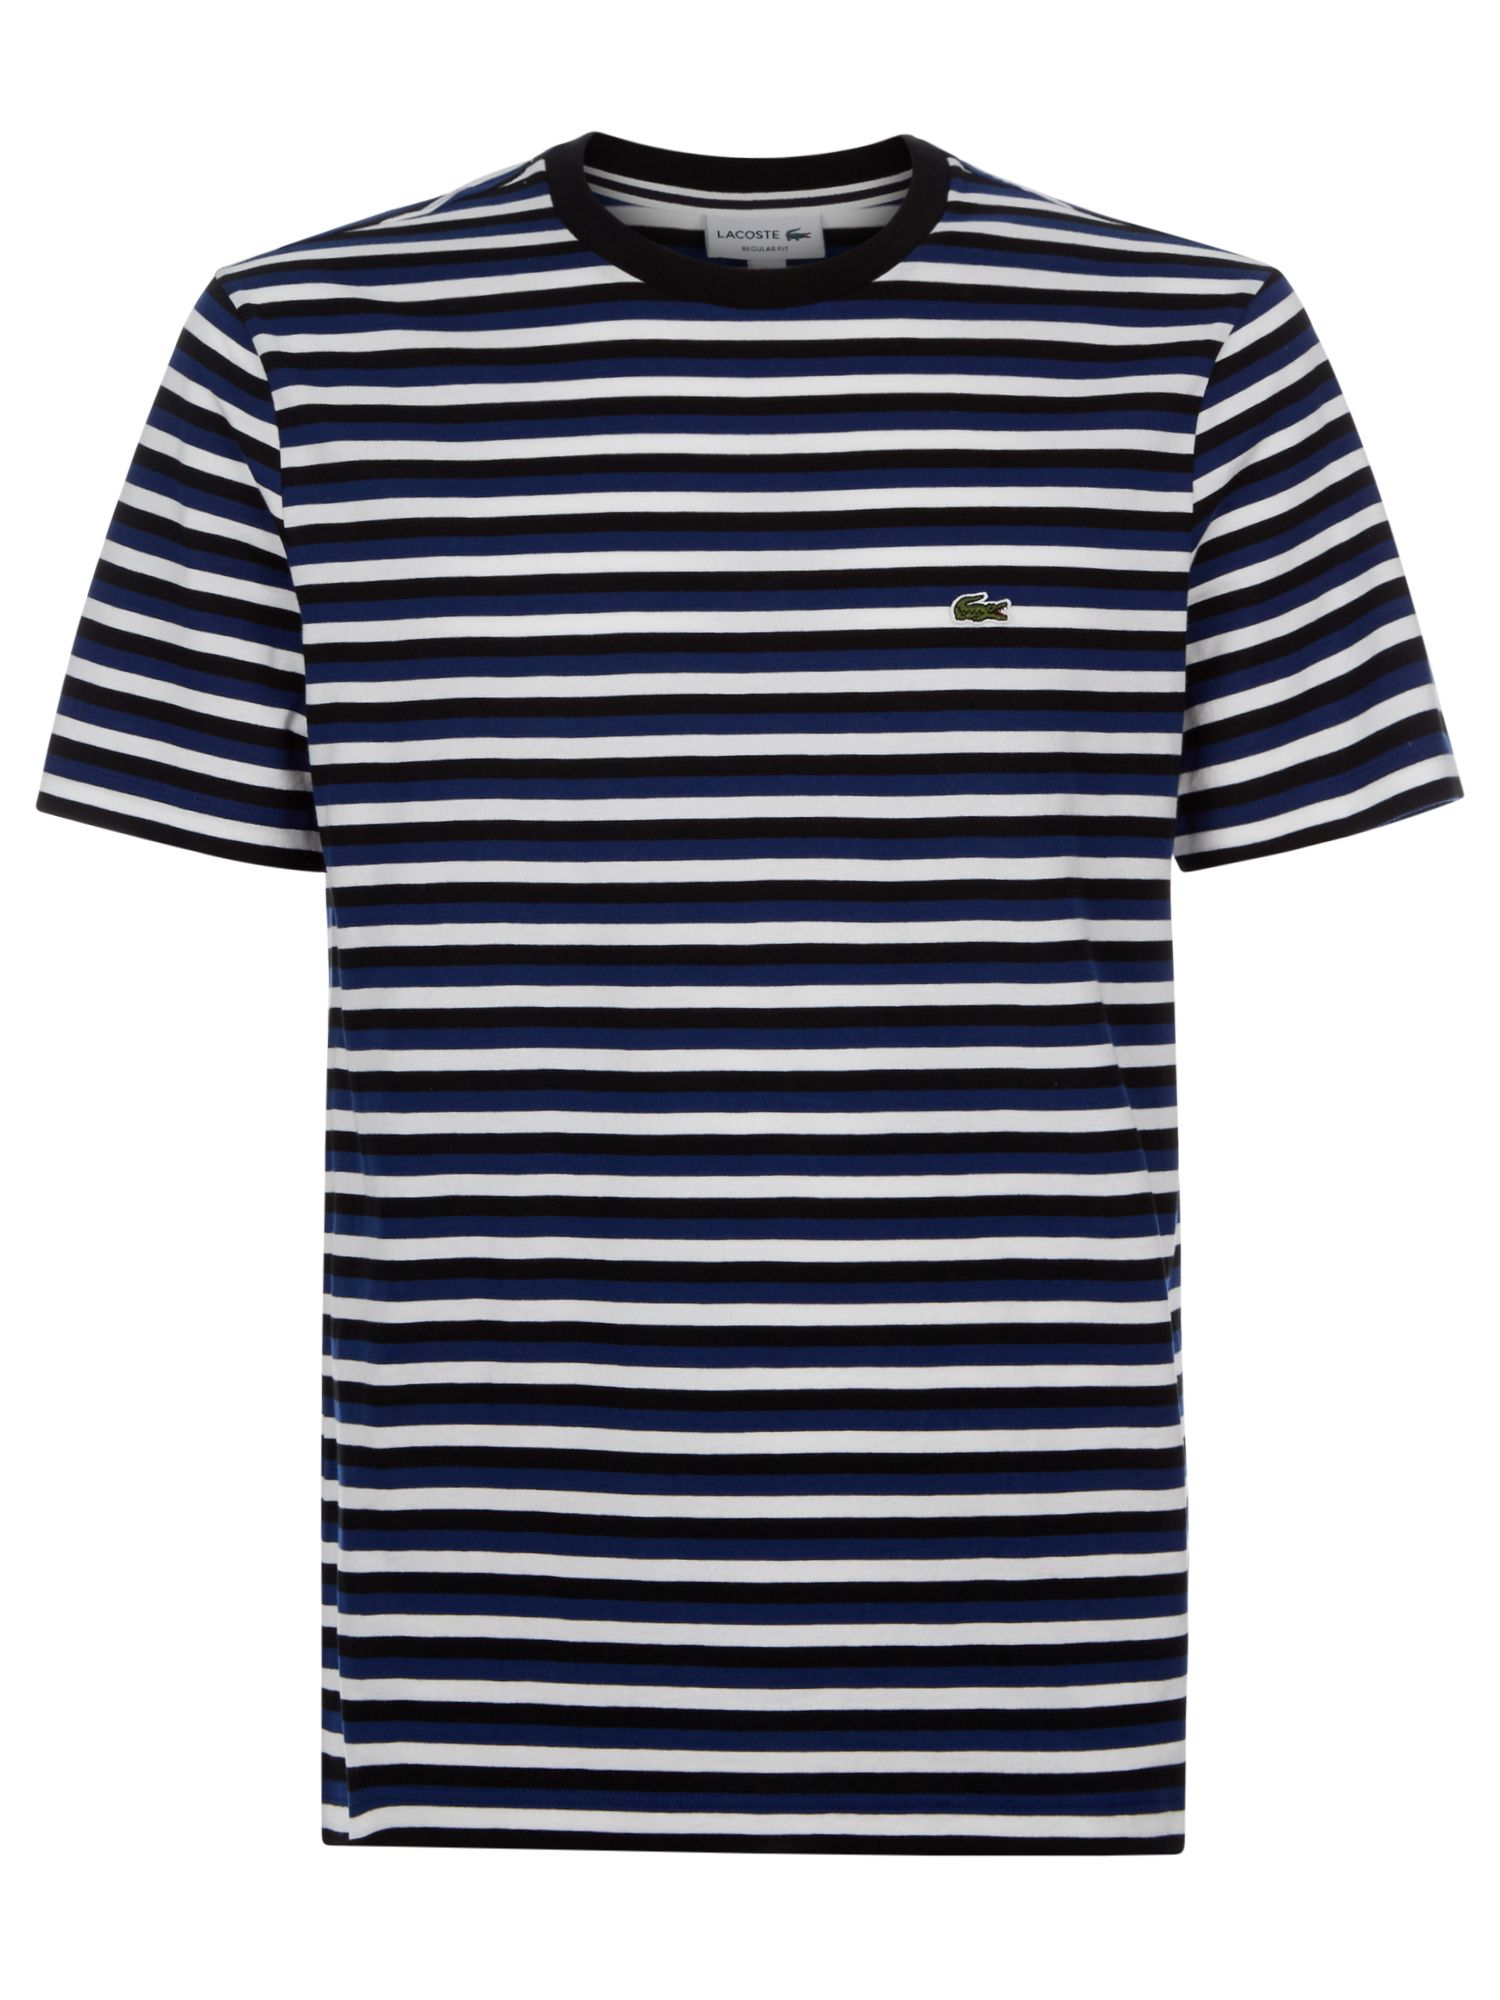 Men's Lacoste Stripped T-Shirt, Methylene